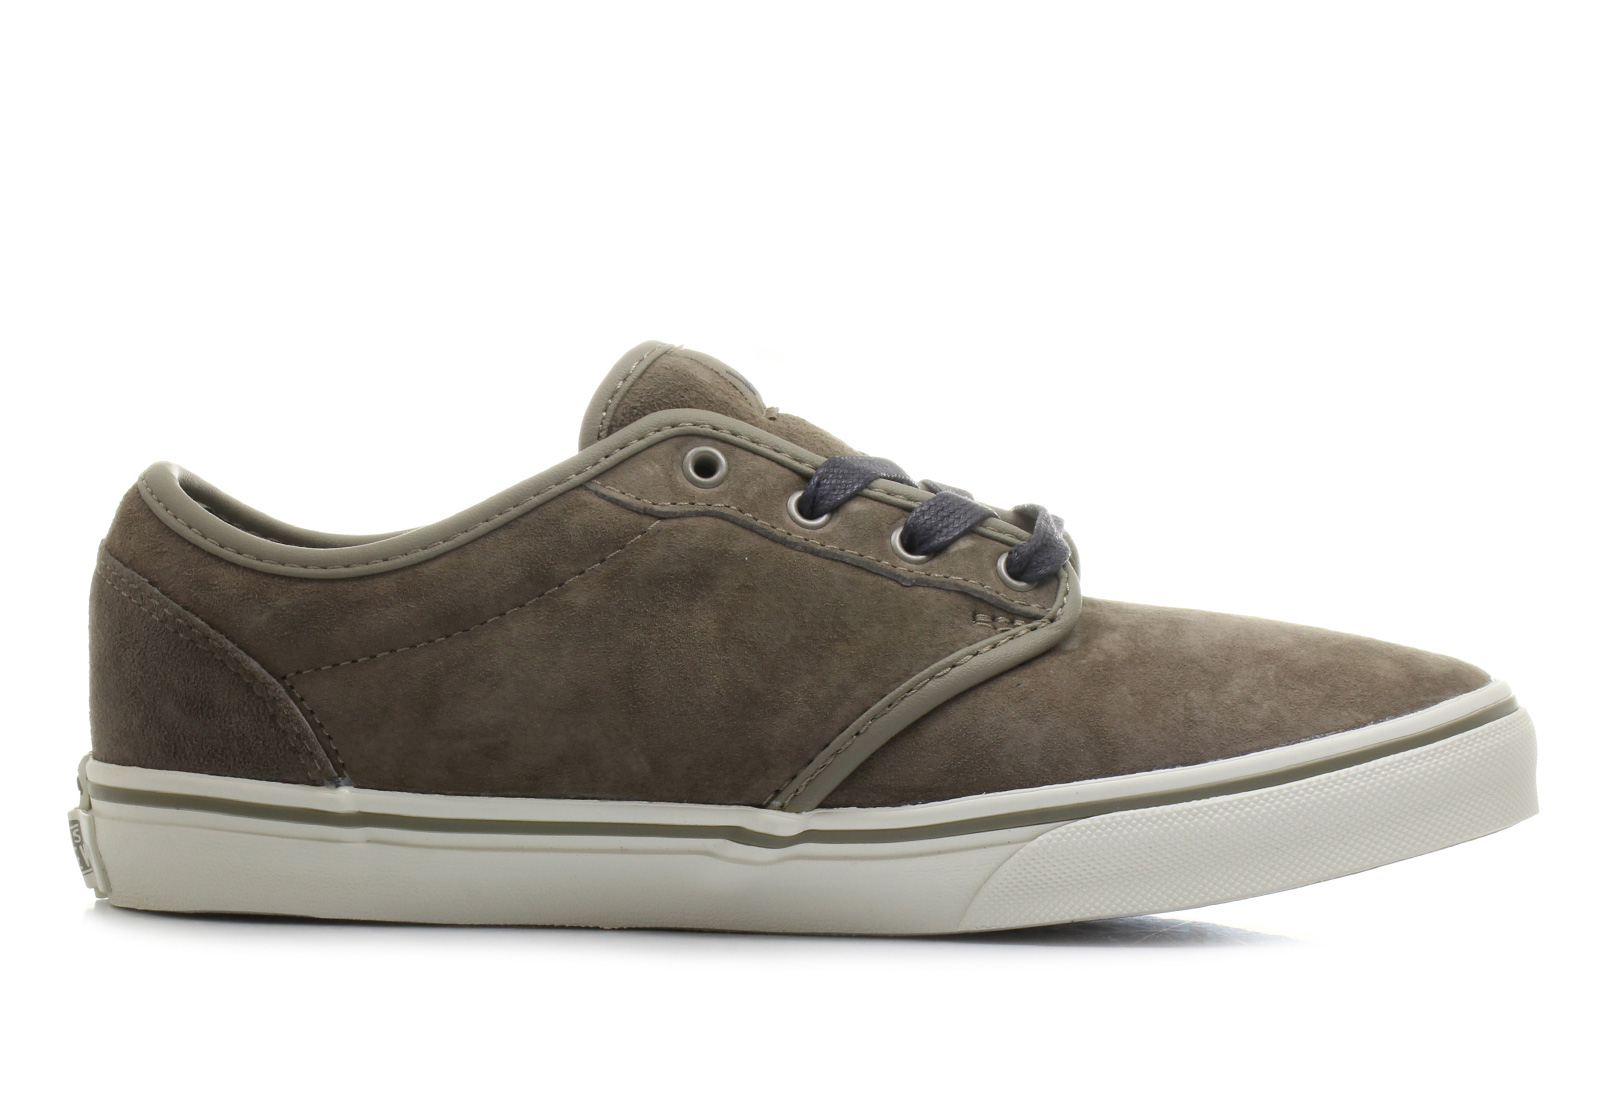 Vans Sneakers Atwood Vznrgte Online Shop For